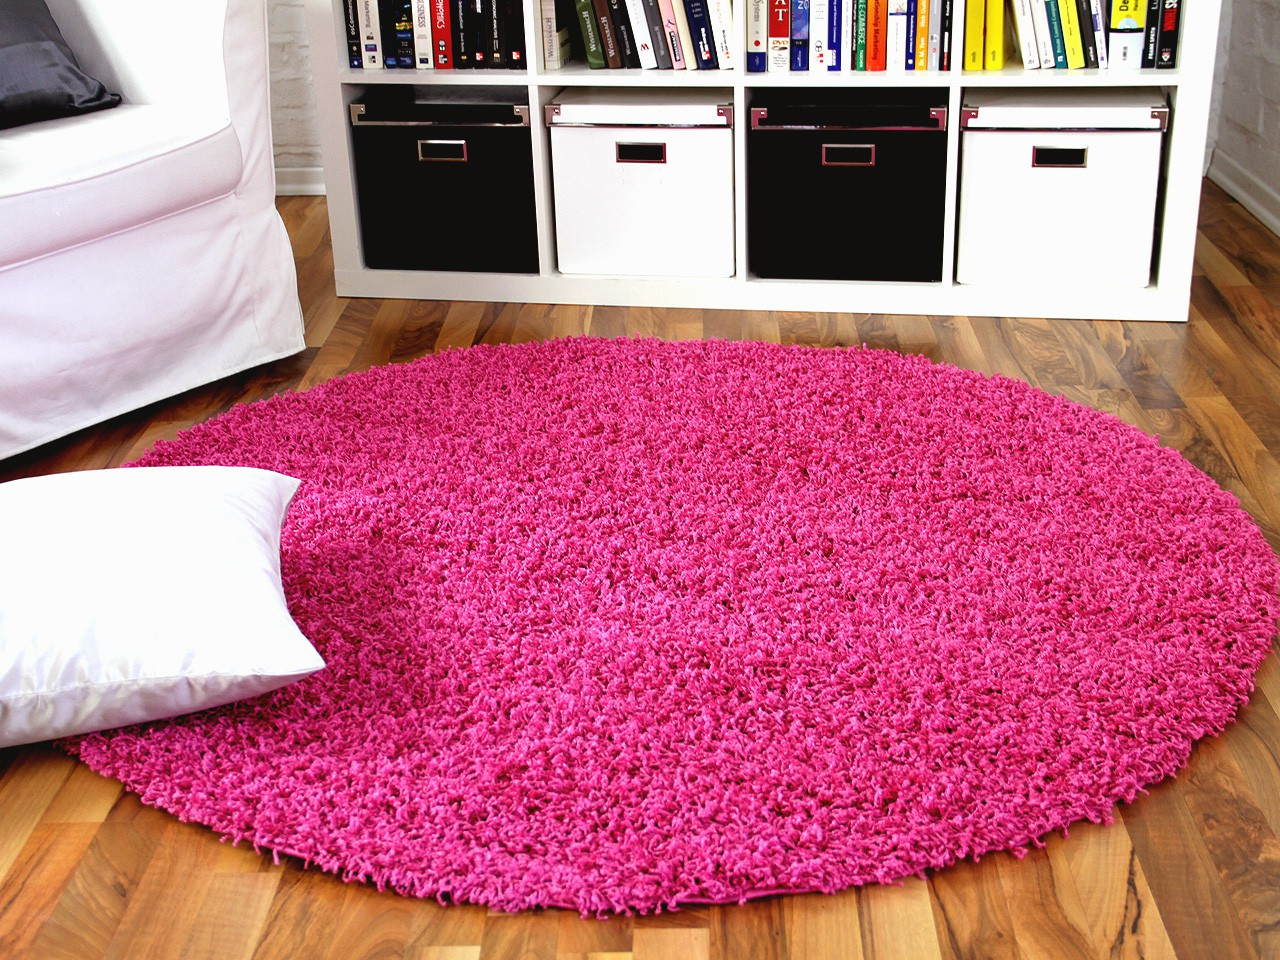 hochflor langflor shaggy teppich aloha pink rund teppiche. Black Bedroom Furniture Sets. Home Design Ideas